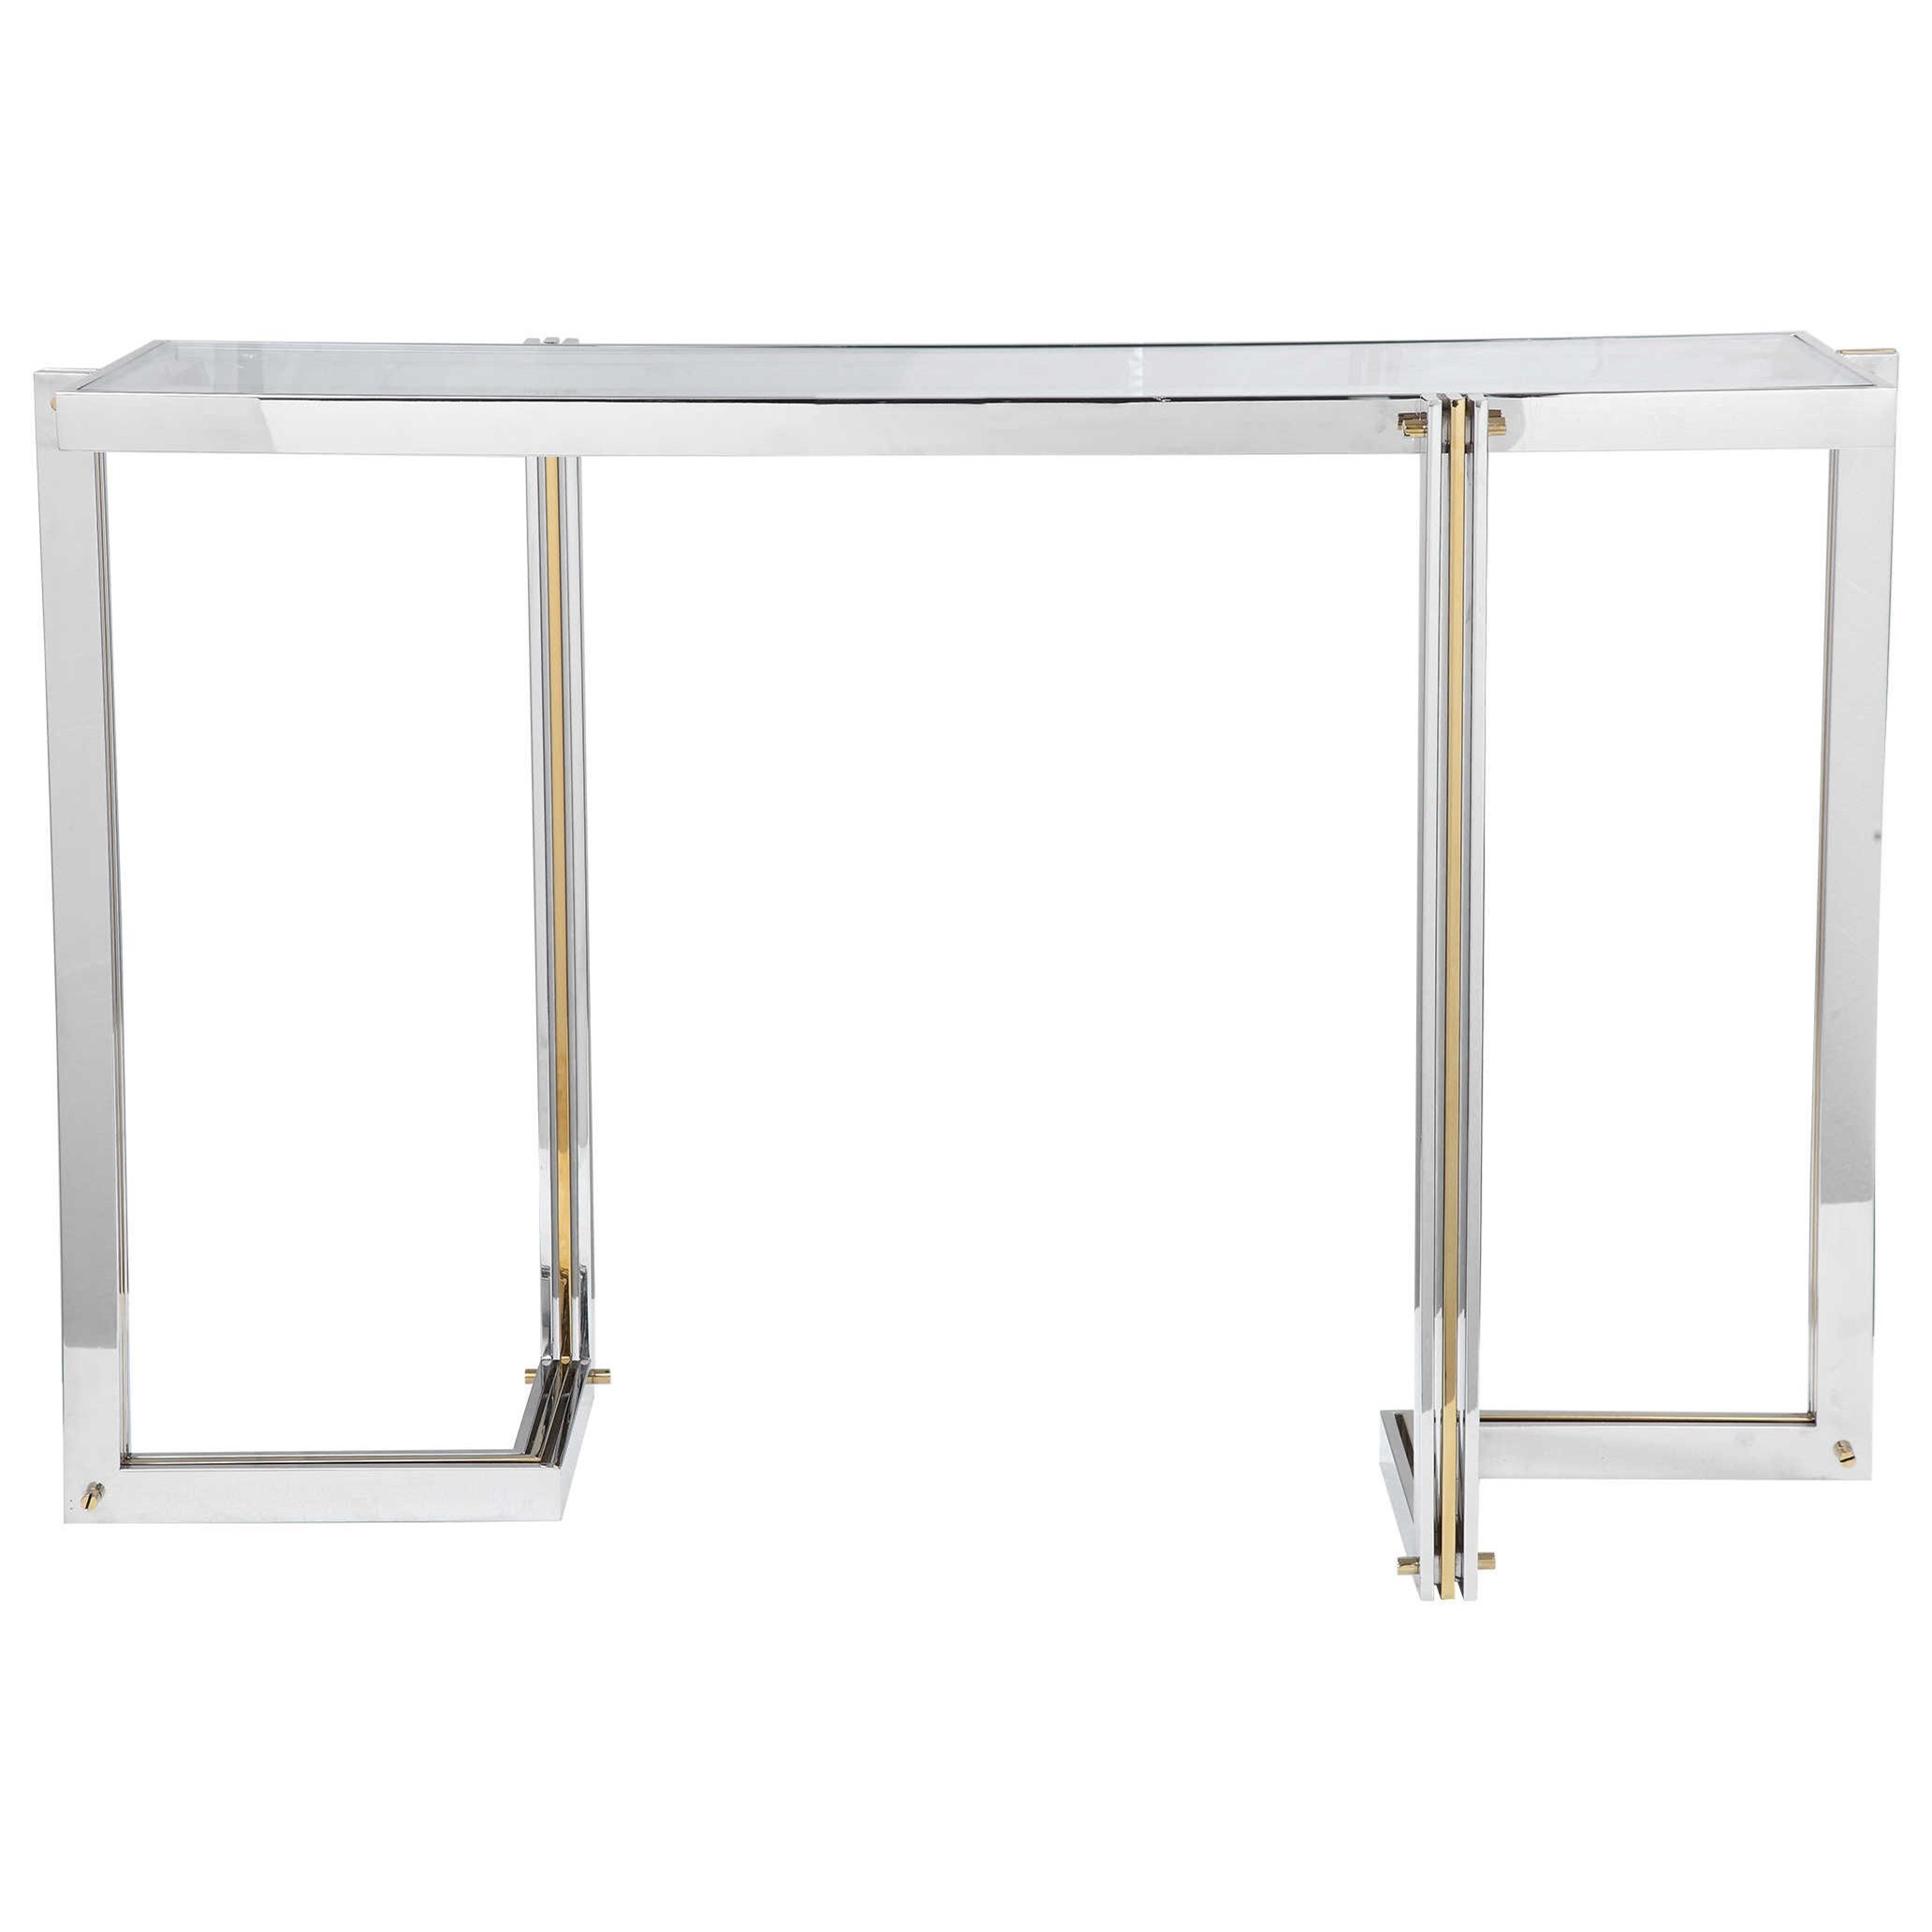 Accent Furniture - Occasional Tables Locke Modern Console Table by Uttermost at Factory Direct Furniture